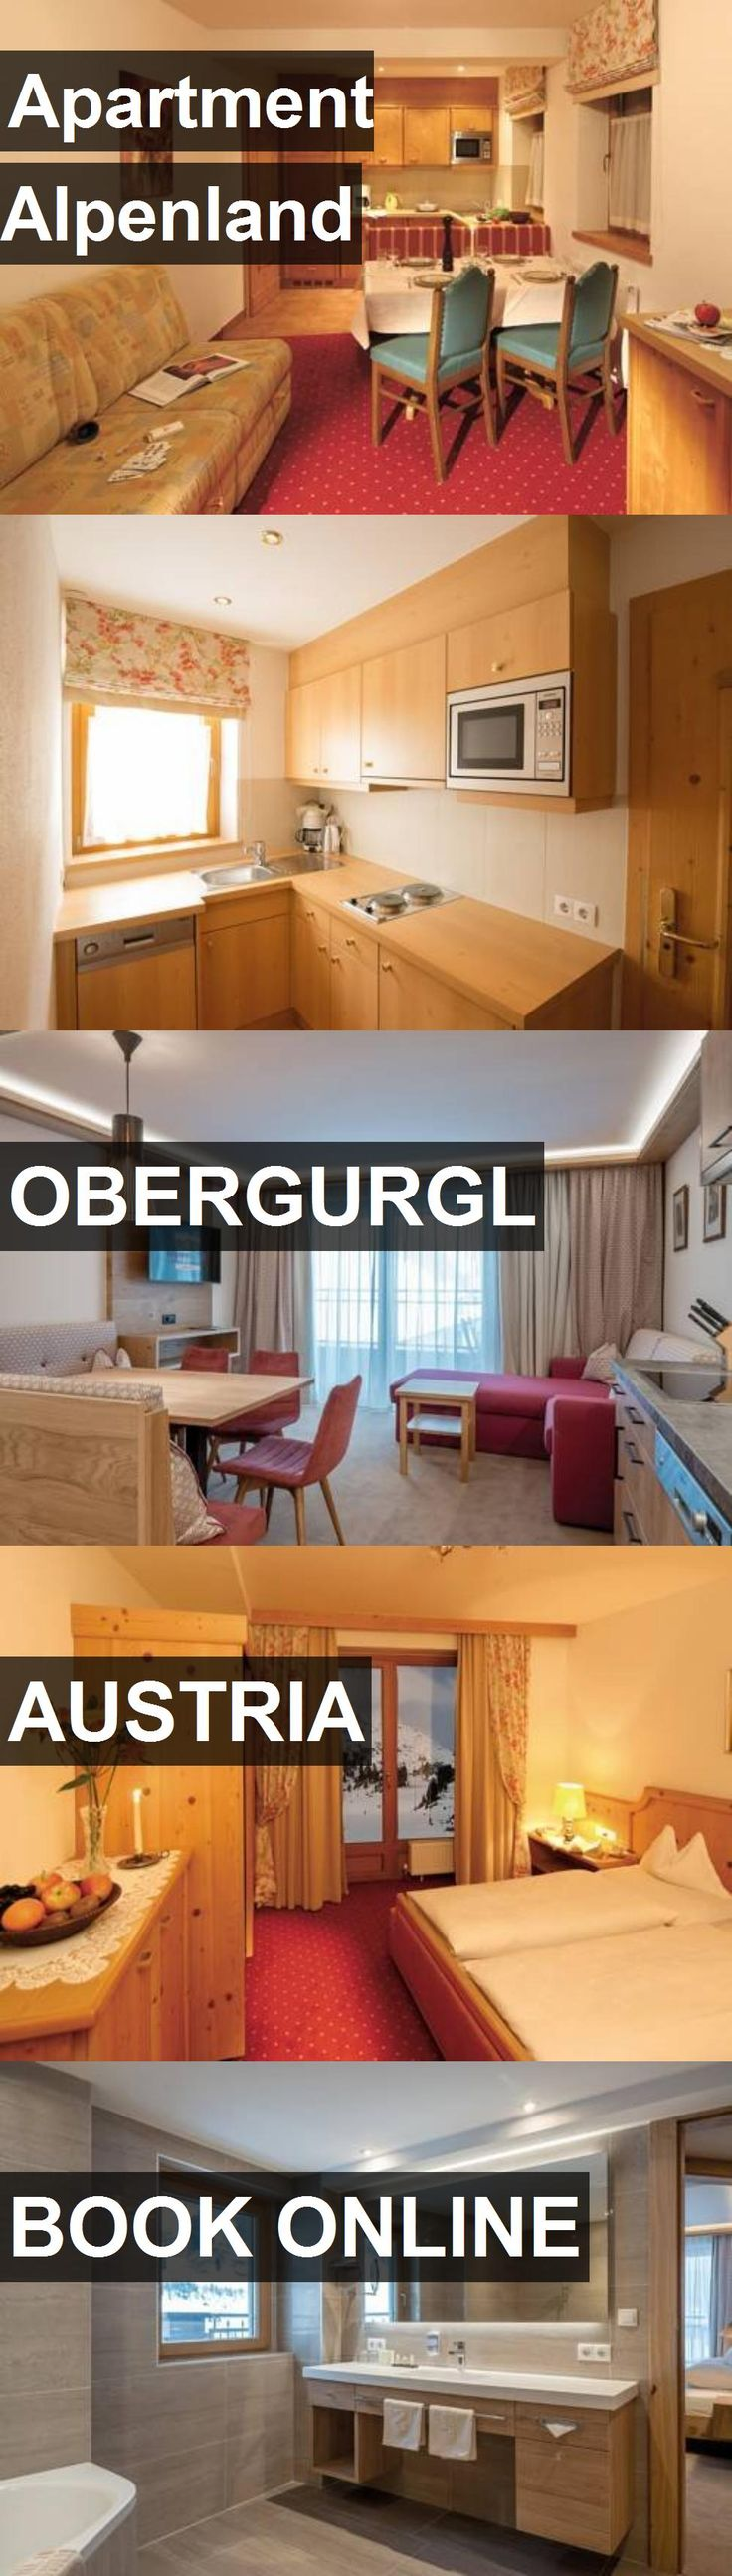 Hotel Apartment Alpenland in Obergurgl, Austria. For more information, photos, reviews and best prices please follow the link. #Austria #Obergurgl #ApartmentAlpenland #hotel #travel #vacation